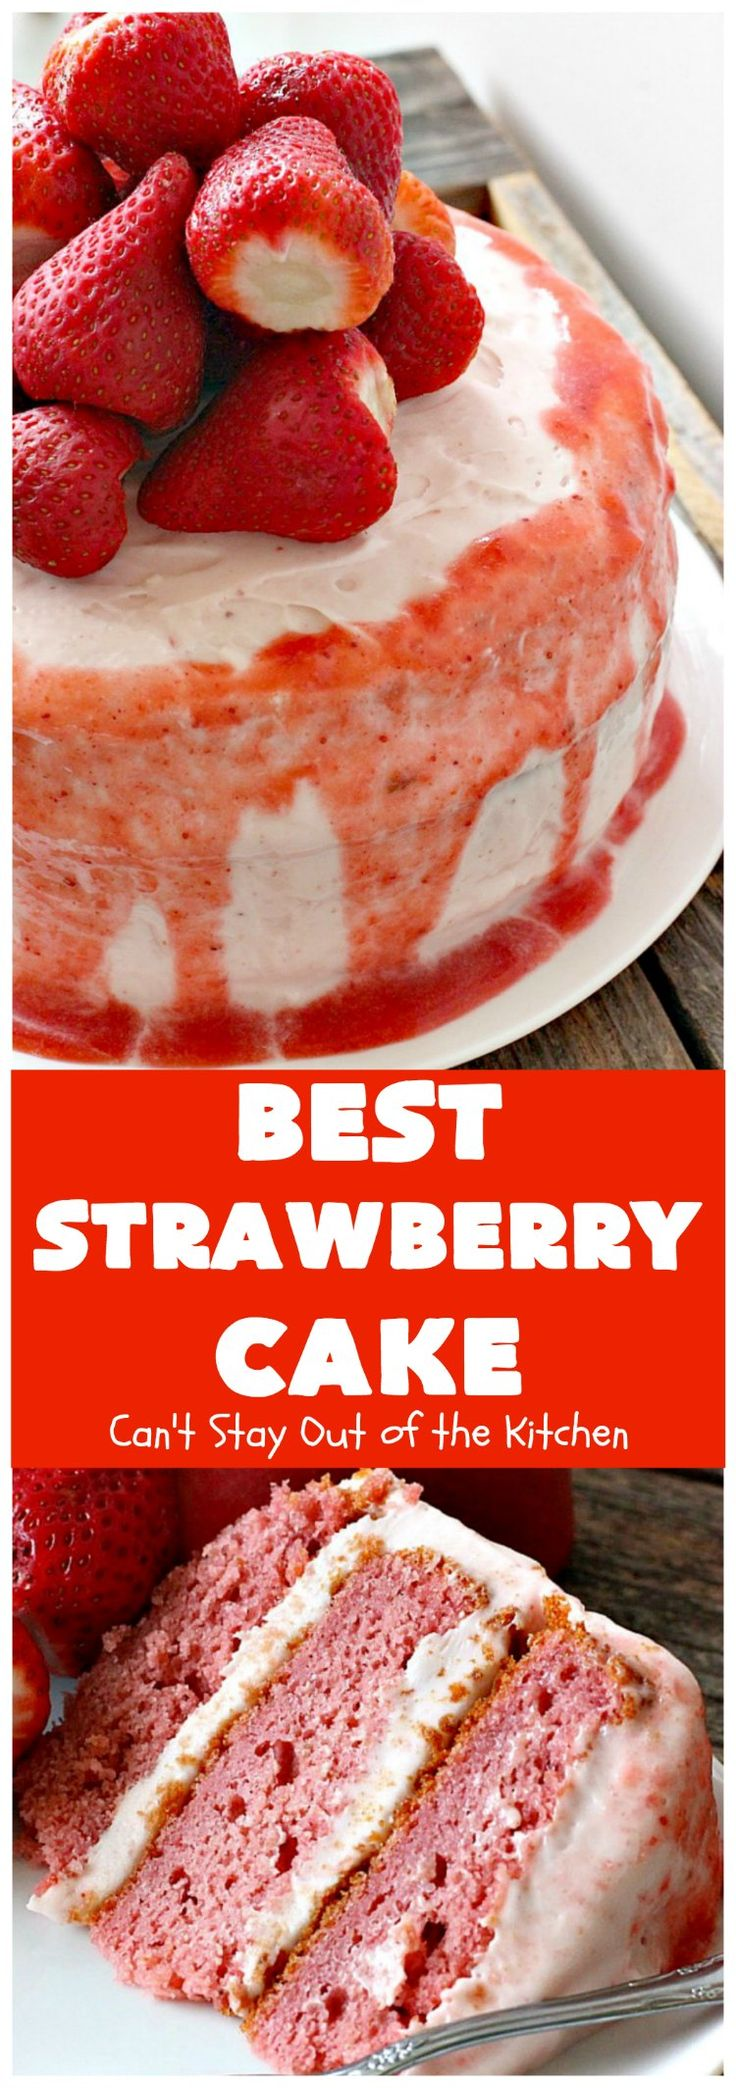 BEST Strawberry Cake | Can't Stay Out of the Kitchen || http://cantstayoutofthekitchen.com/2017/05/12/best-strawberry-cake/